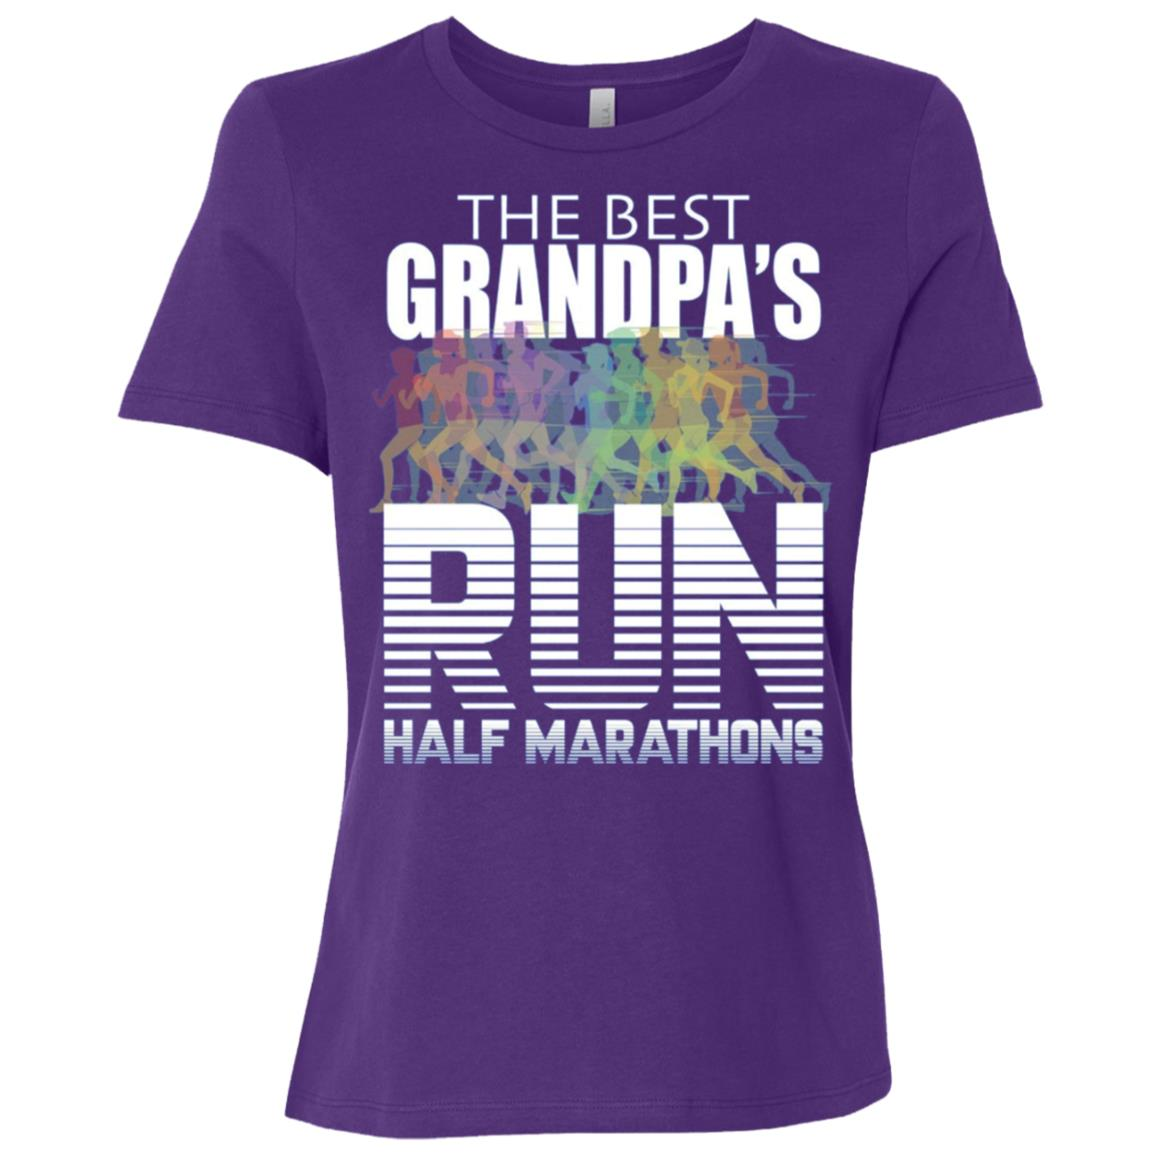 The Best Grandpas Run Half Marathons – Women Short Sleeve T-Shirt